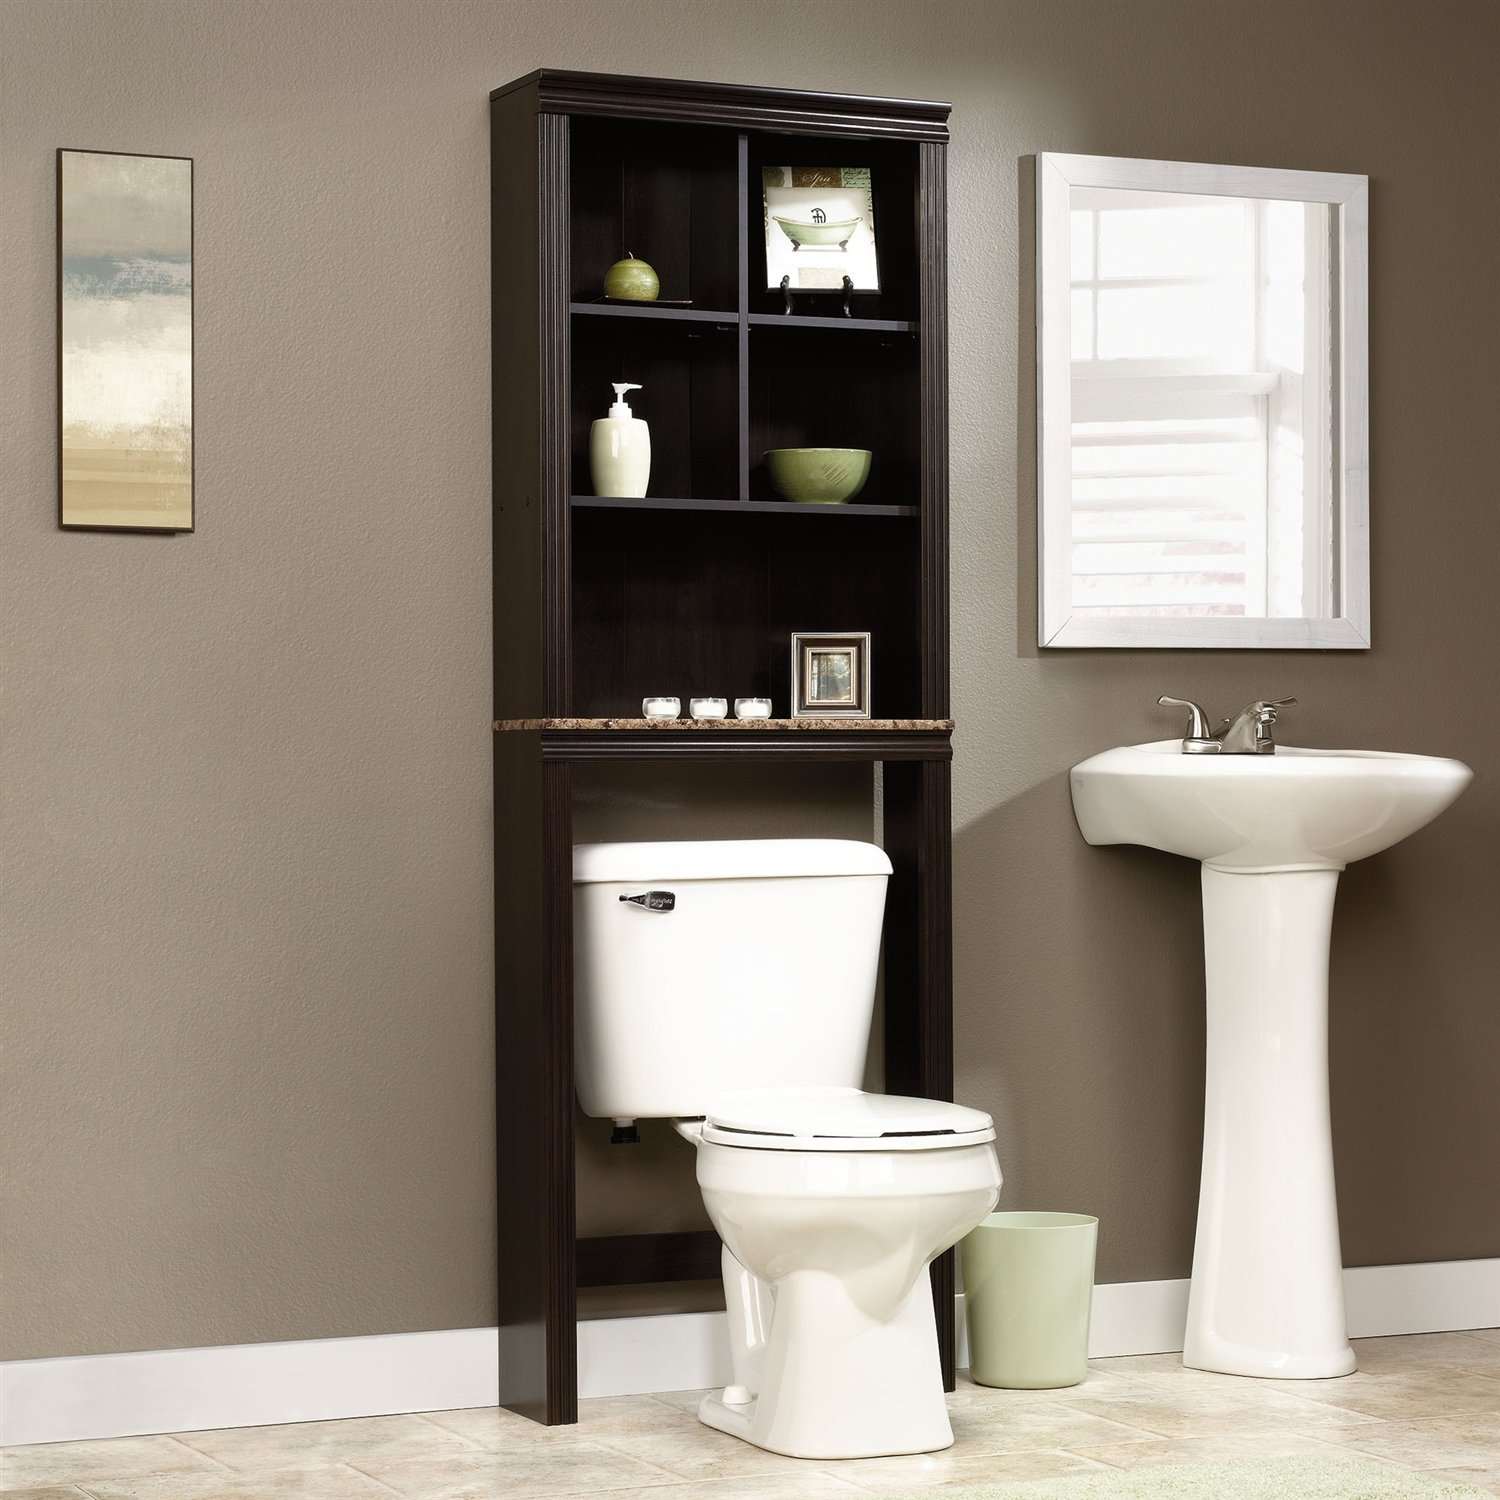 Amazon.com: Over Toilet Bathroom Storage Cabinet Shelves Cubby ...